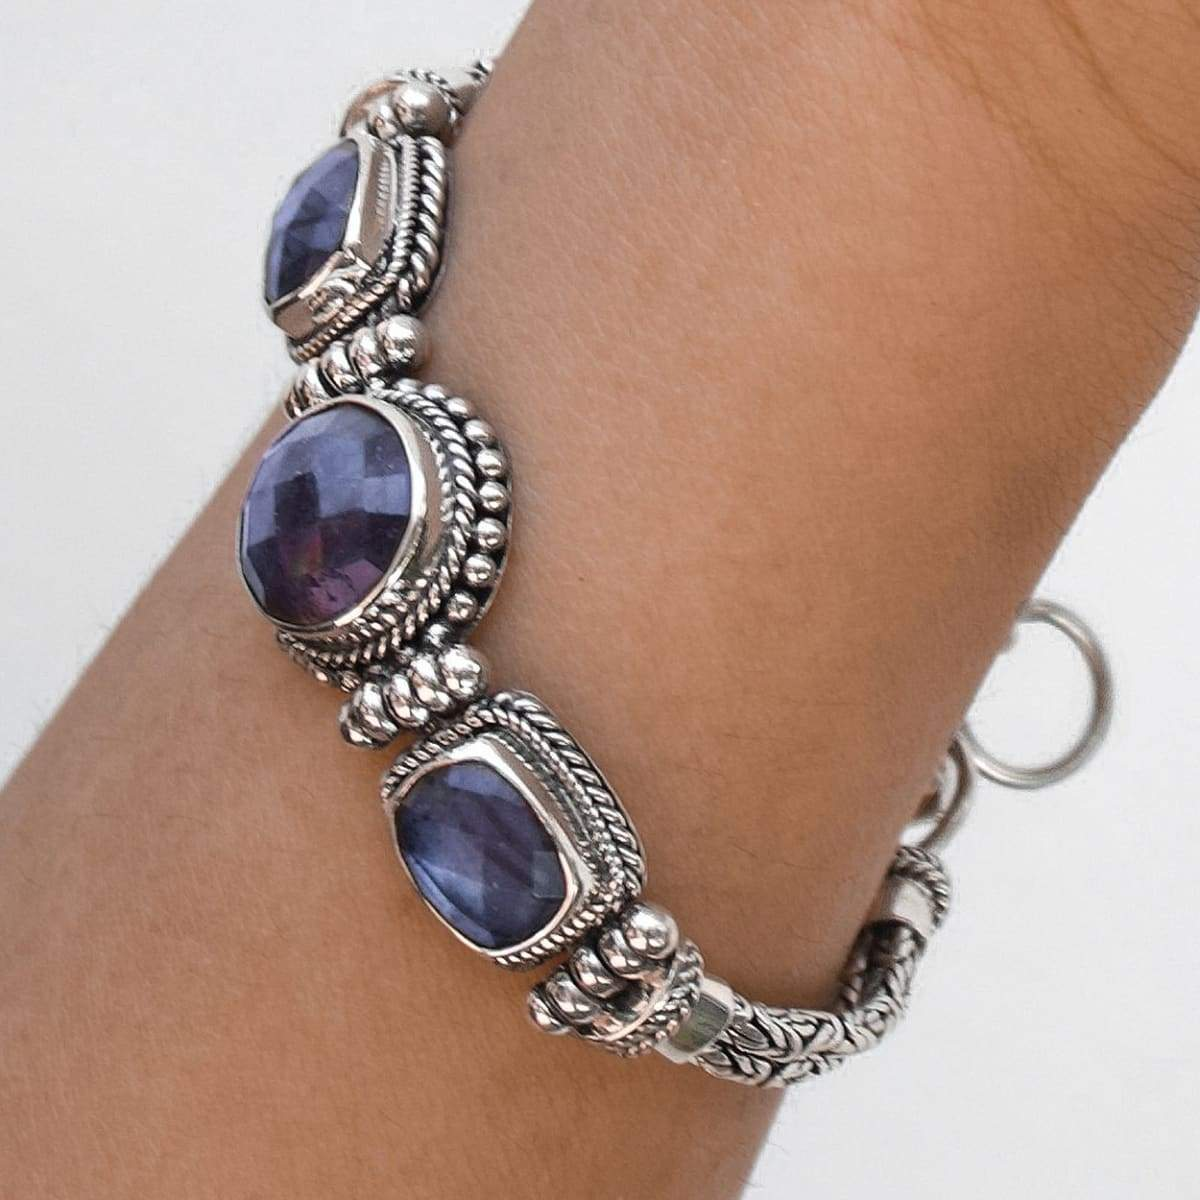 Bali Silver Bracelet for Women with Faceted Labradorite February Birthstone - by Craftnez